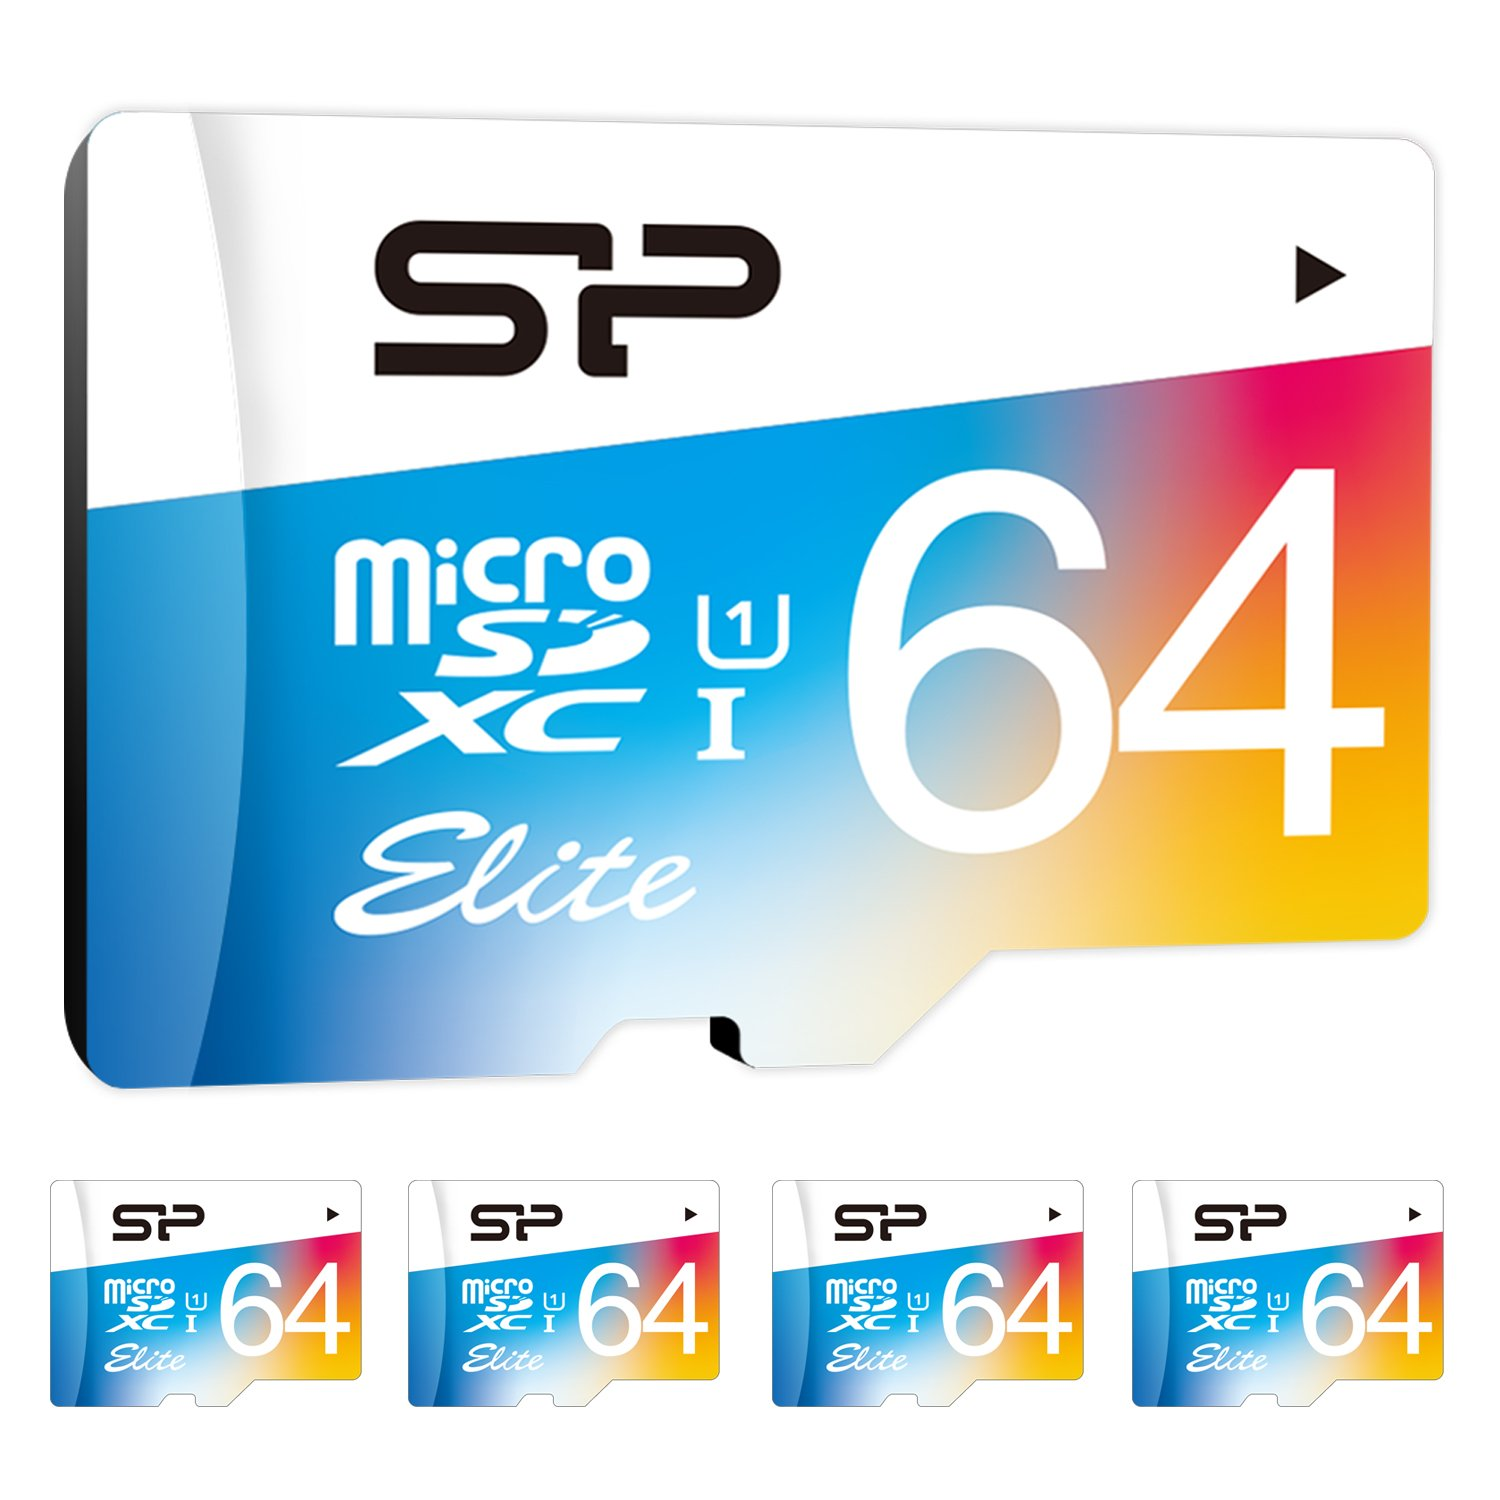 Silicon Power 64GB x 5 PACK MicroSDXC UHS-1 Memory Card, with Adapter (SP064GBSTXBU1V20AB)